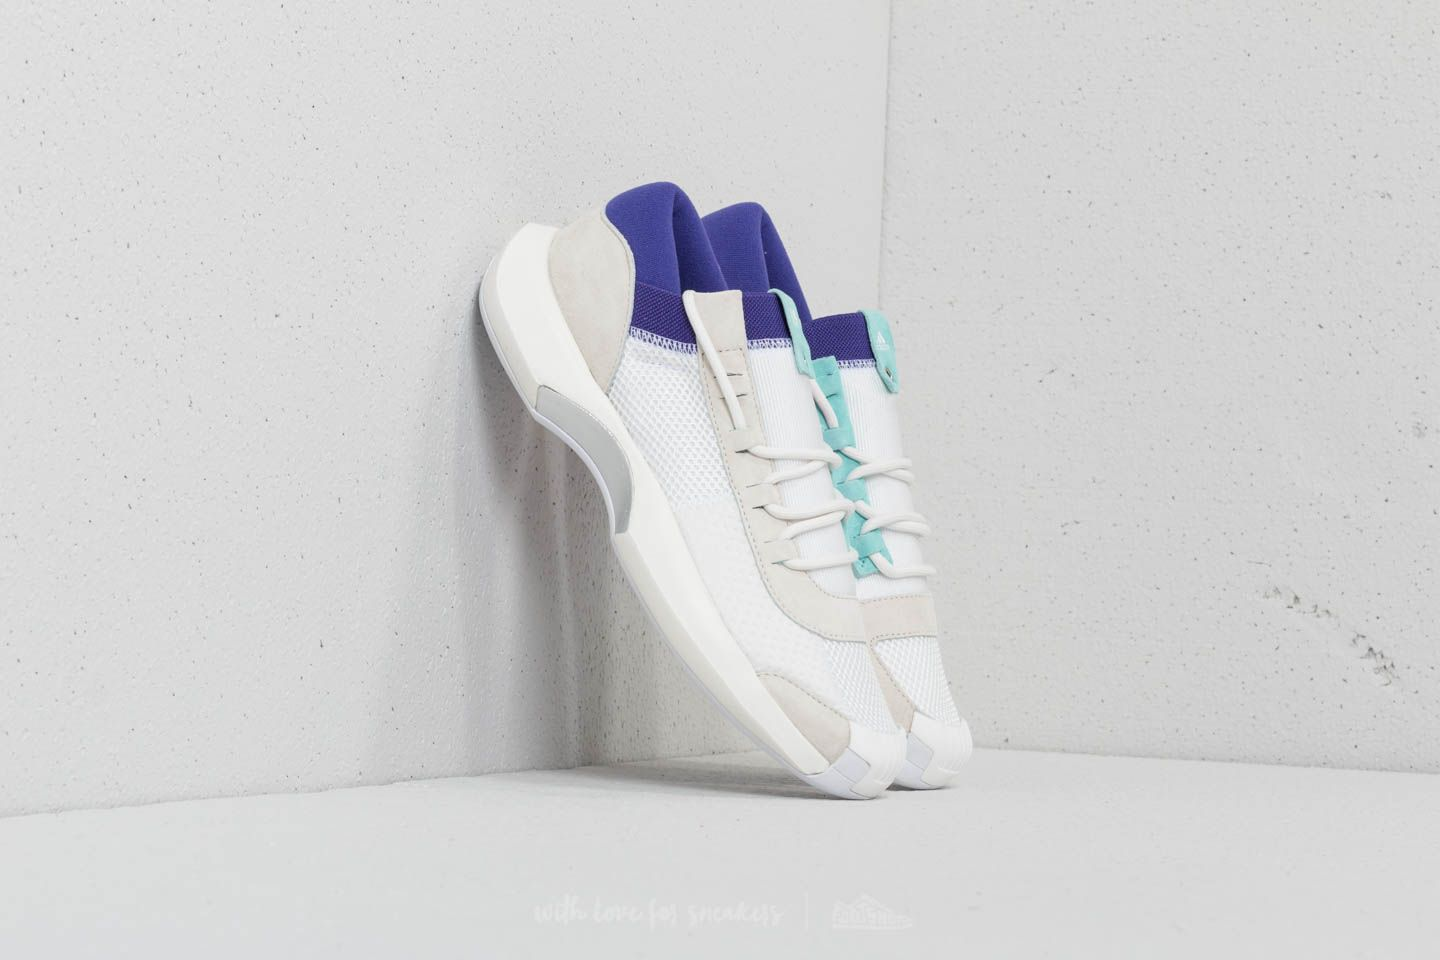 best website 0cfcd 94bb2 adidas Consortium x Nicekicks Crazy 1 ADV Core White Off White Energy  Aqua at